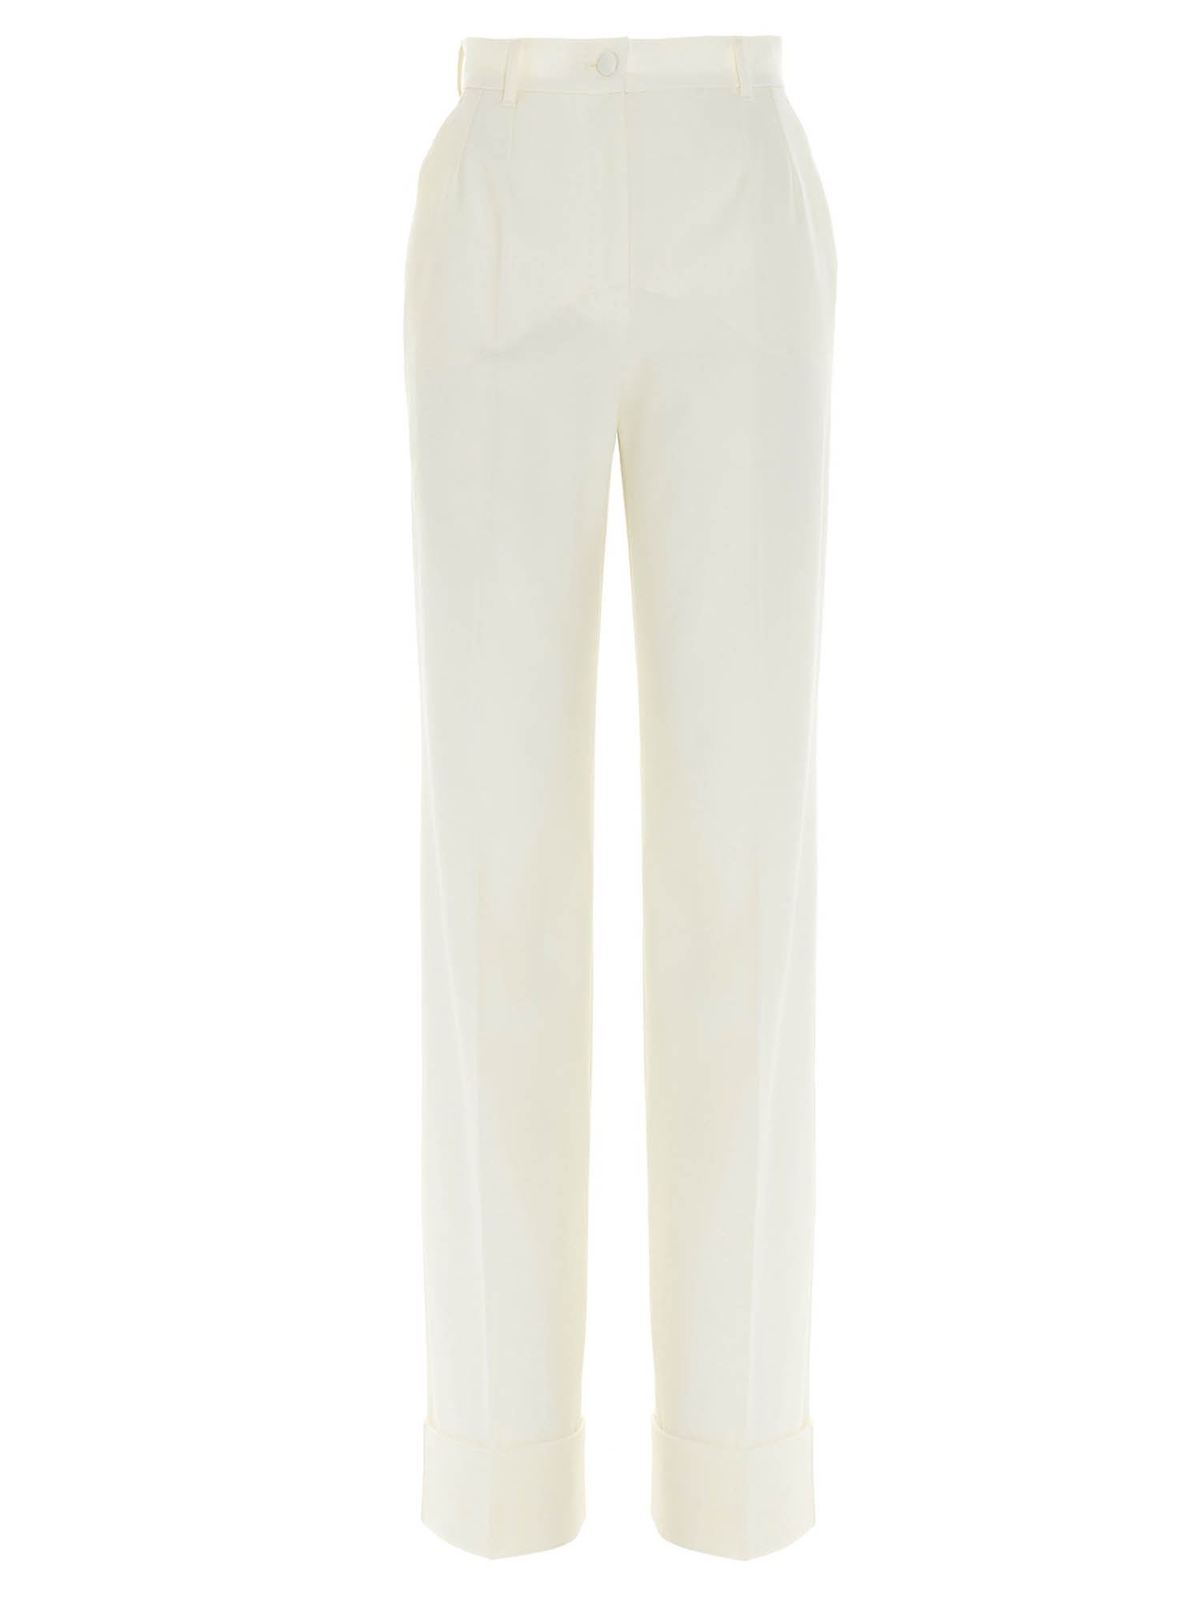 Dolce & Gabbana PALAZZO PANTS IN WHITE